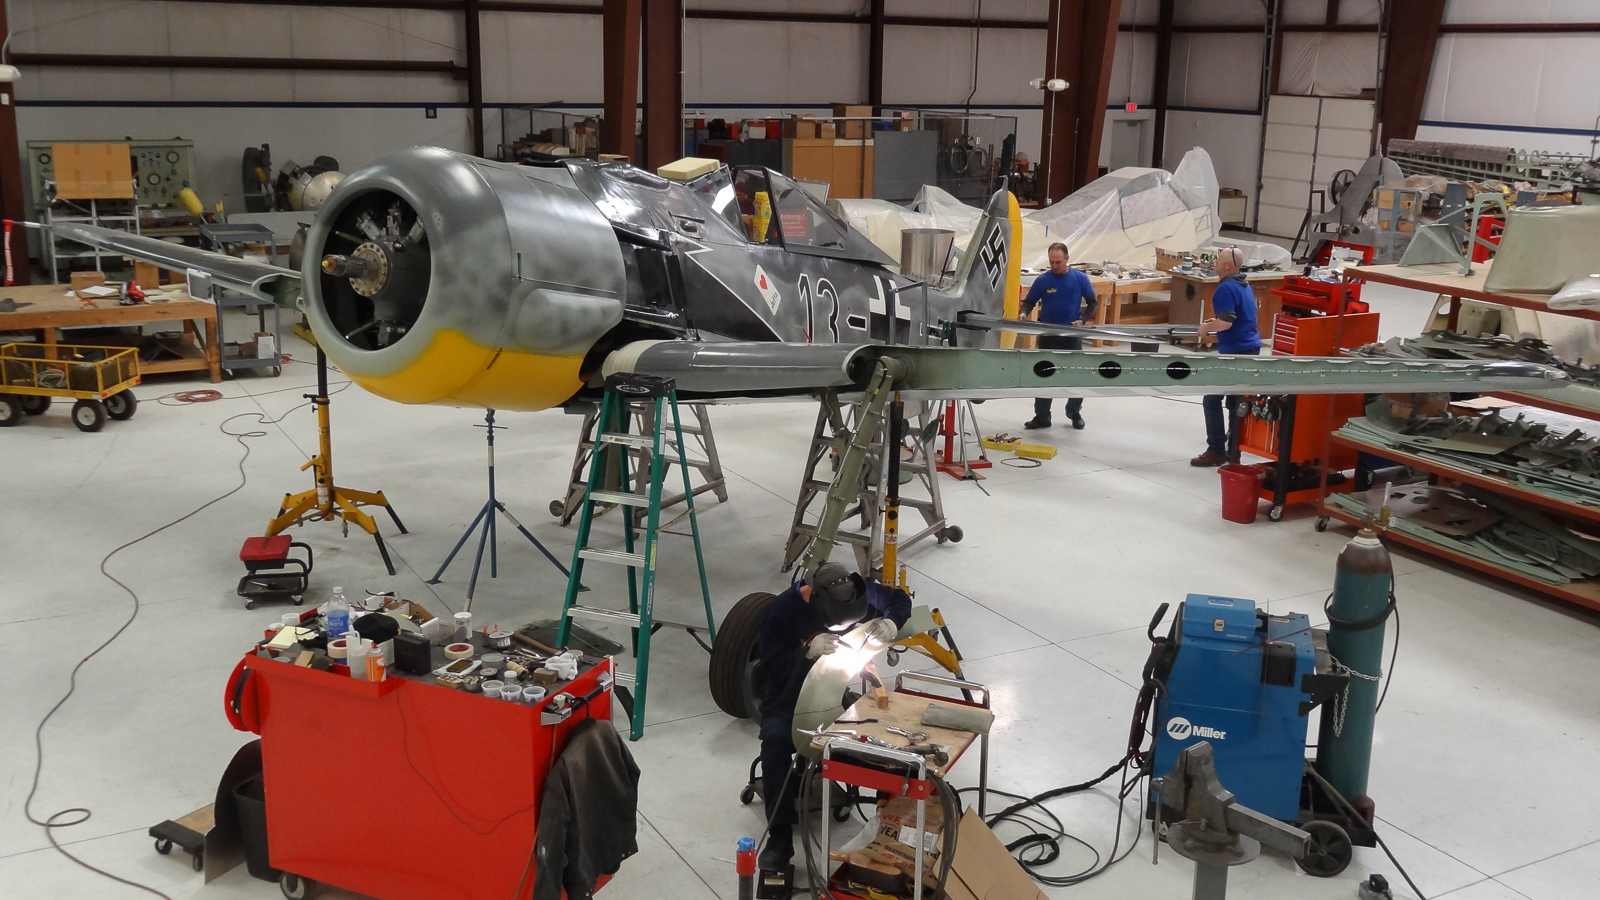 Another view of the installed engine now with its cowling on. (photo via GossHawk Unlimited)